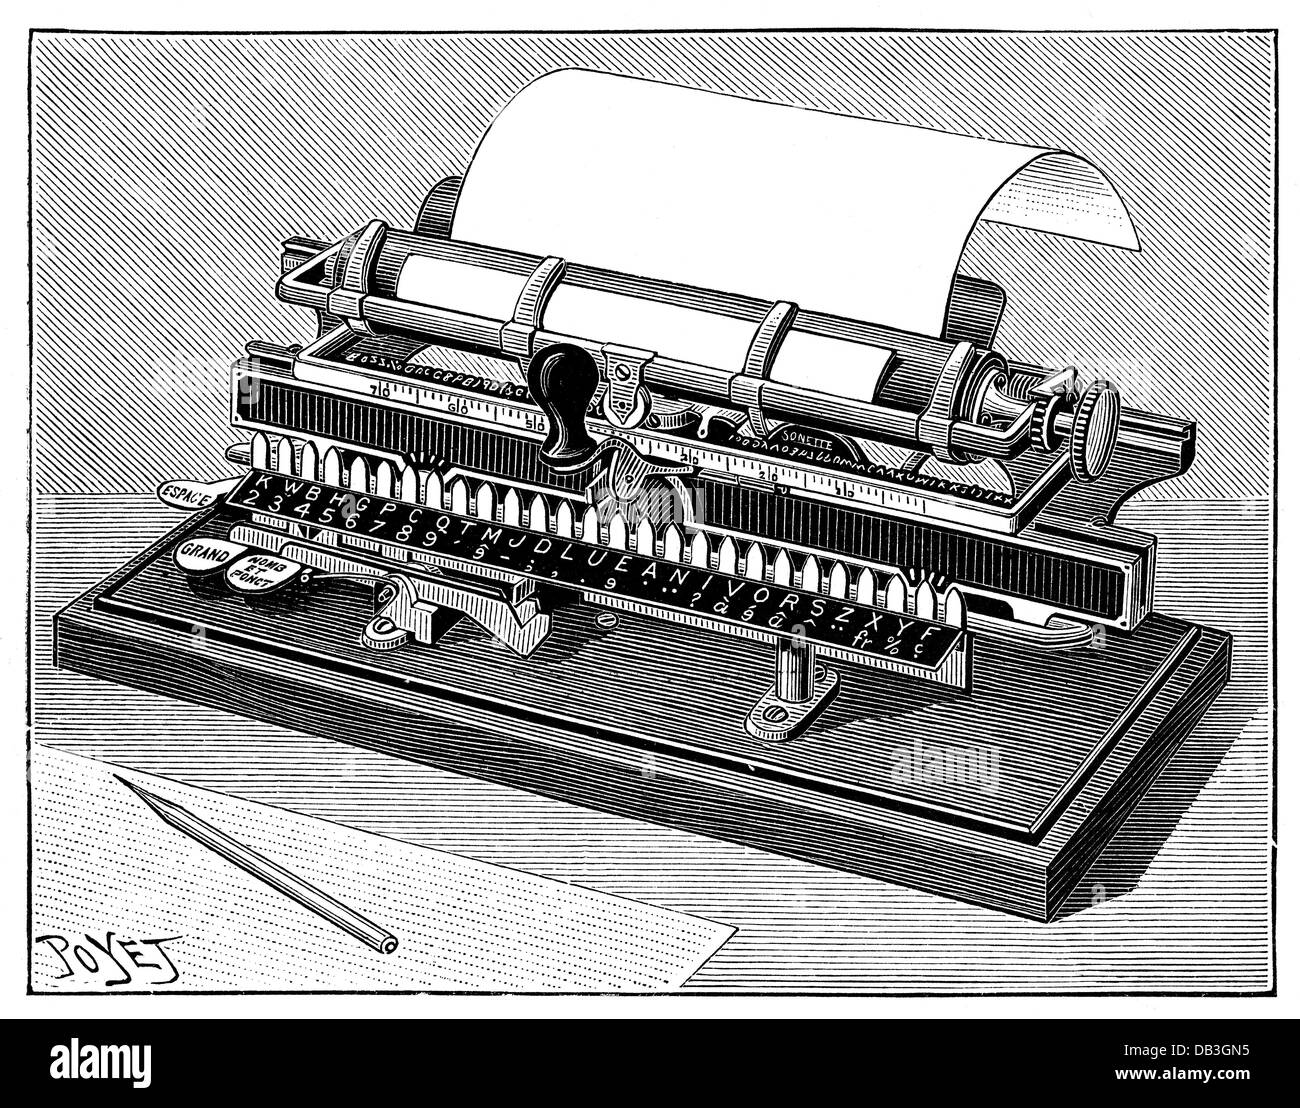 office office equipment typewriters typewriter by Merritt 1891